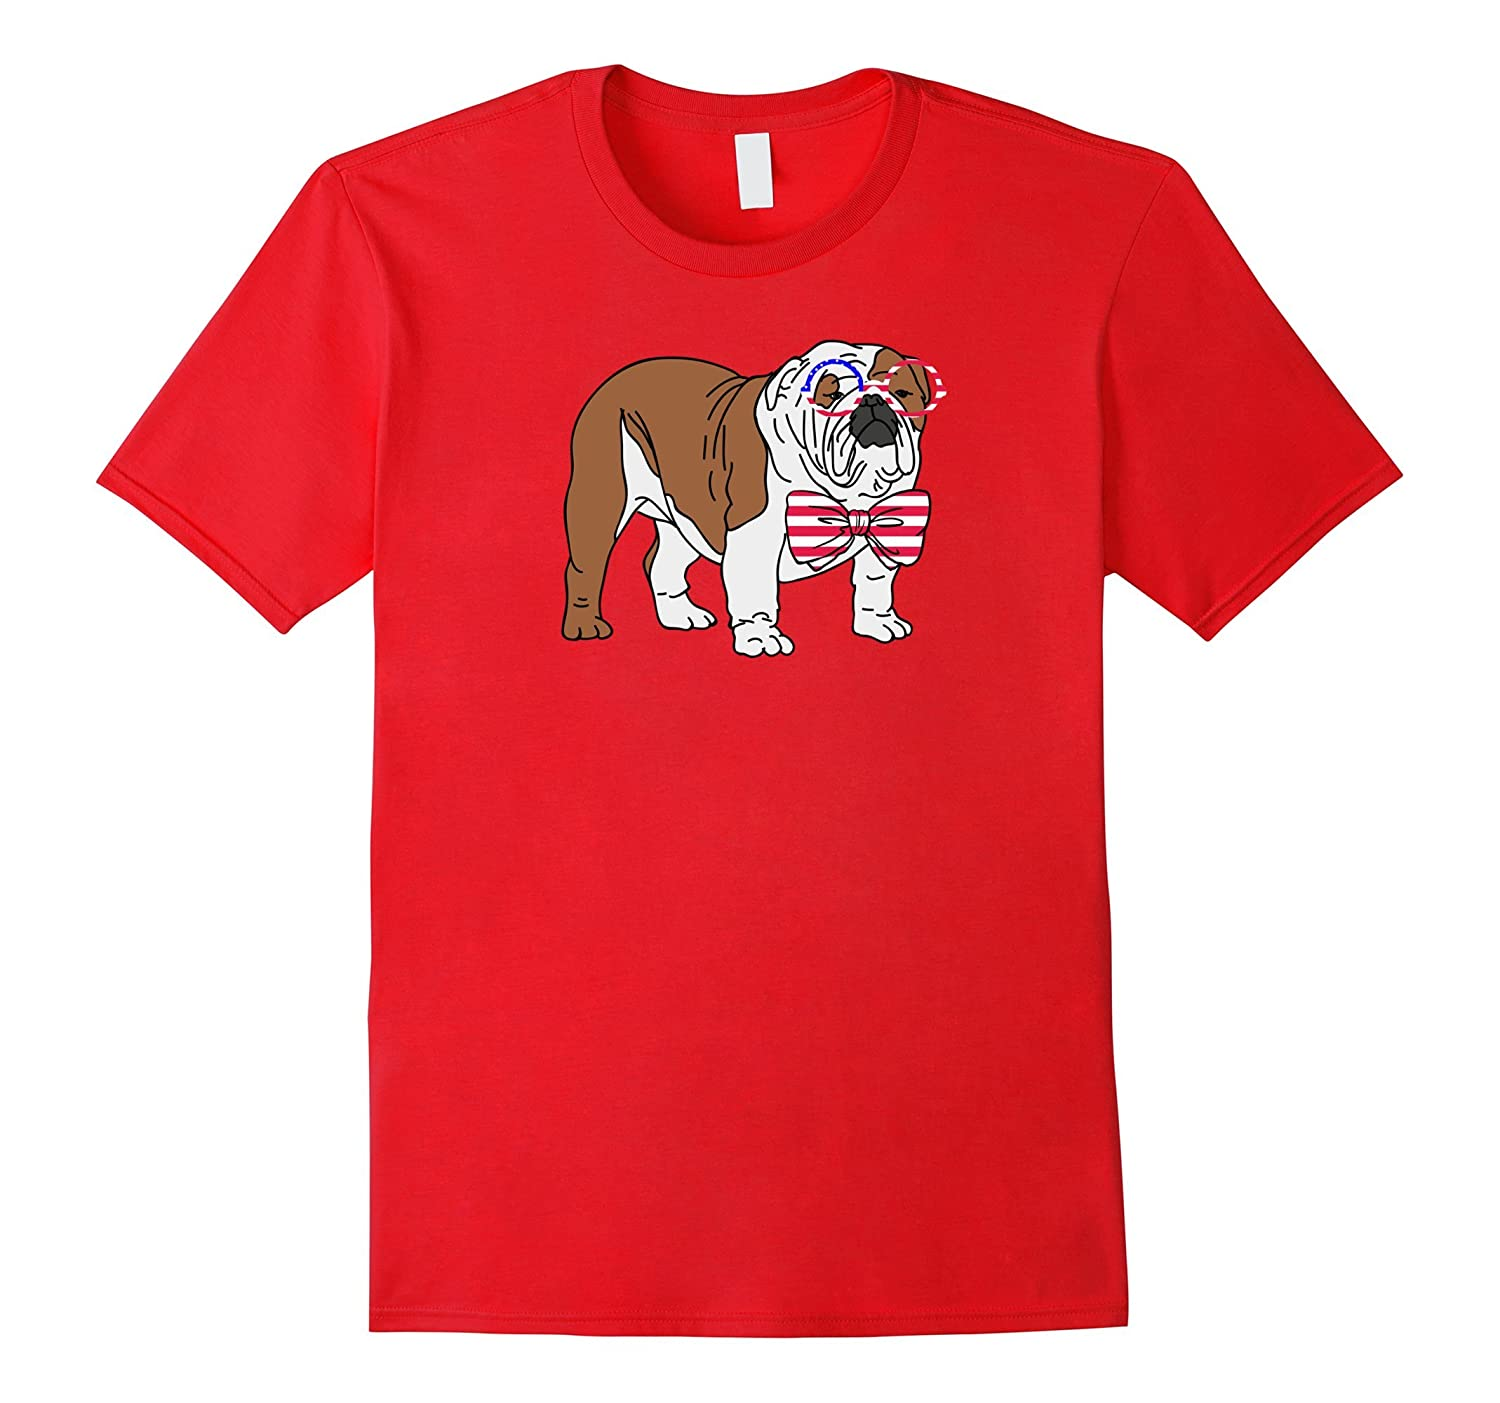 The 4th of July English Bulldog with Bow-Tie T-Shirt-Vaci